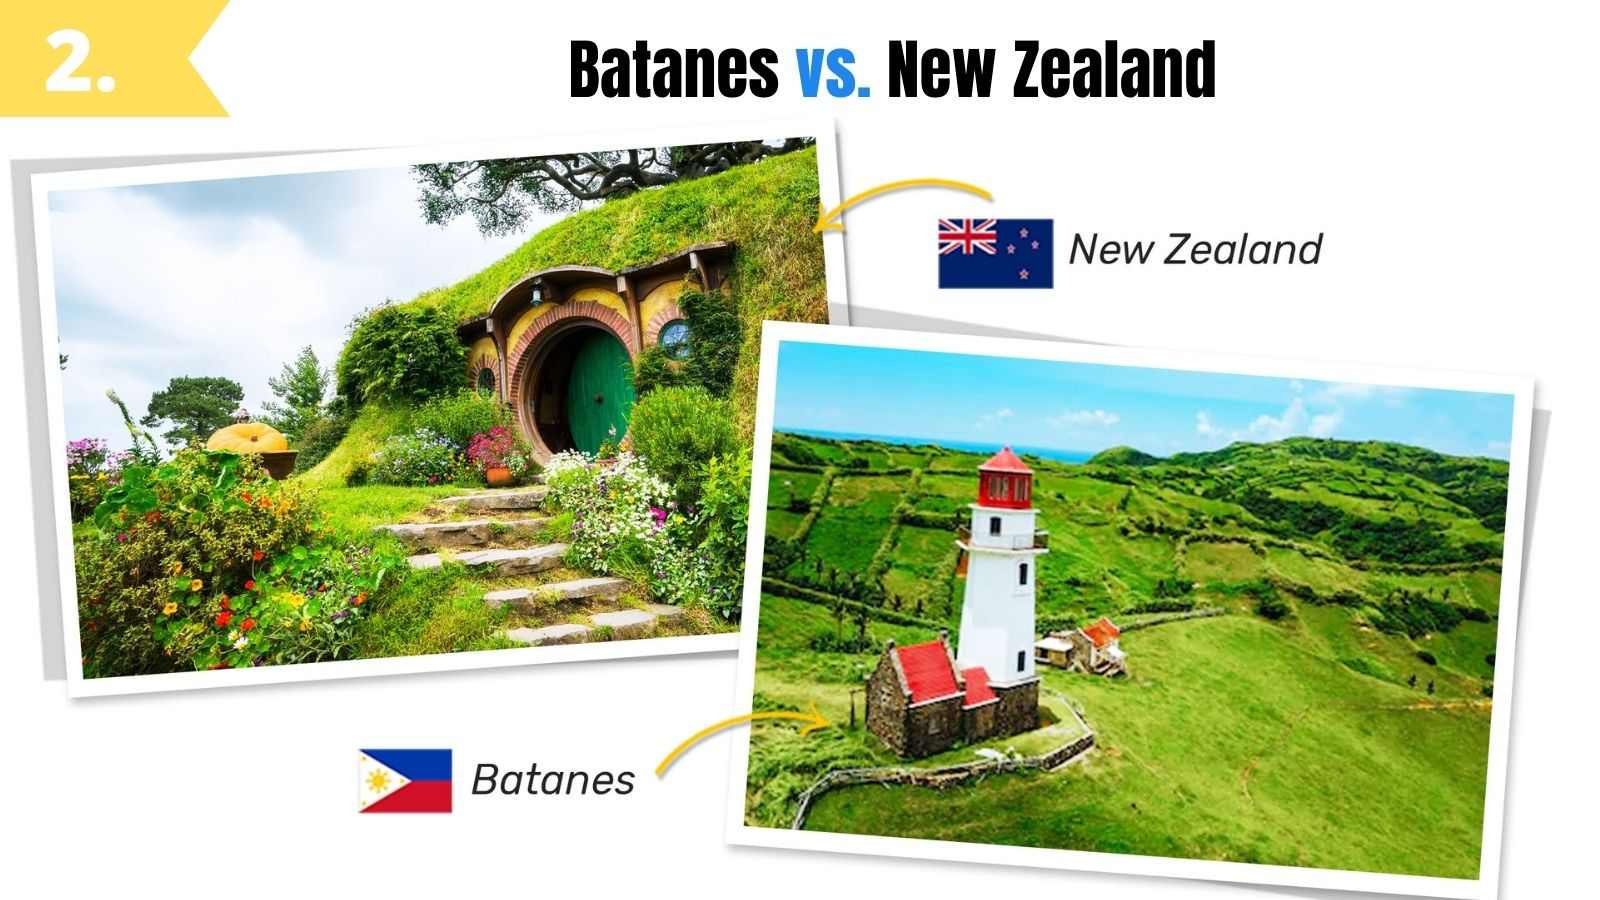 batanes compared to new zealand